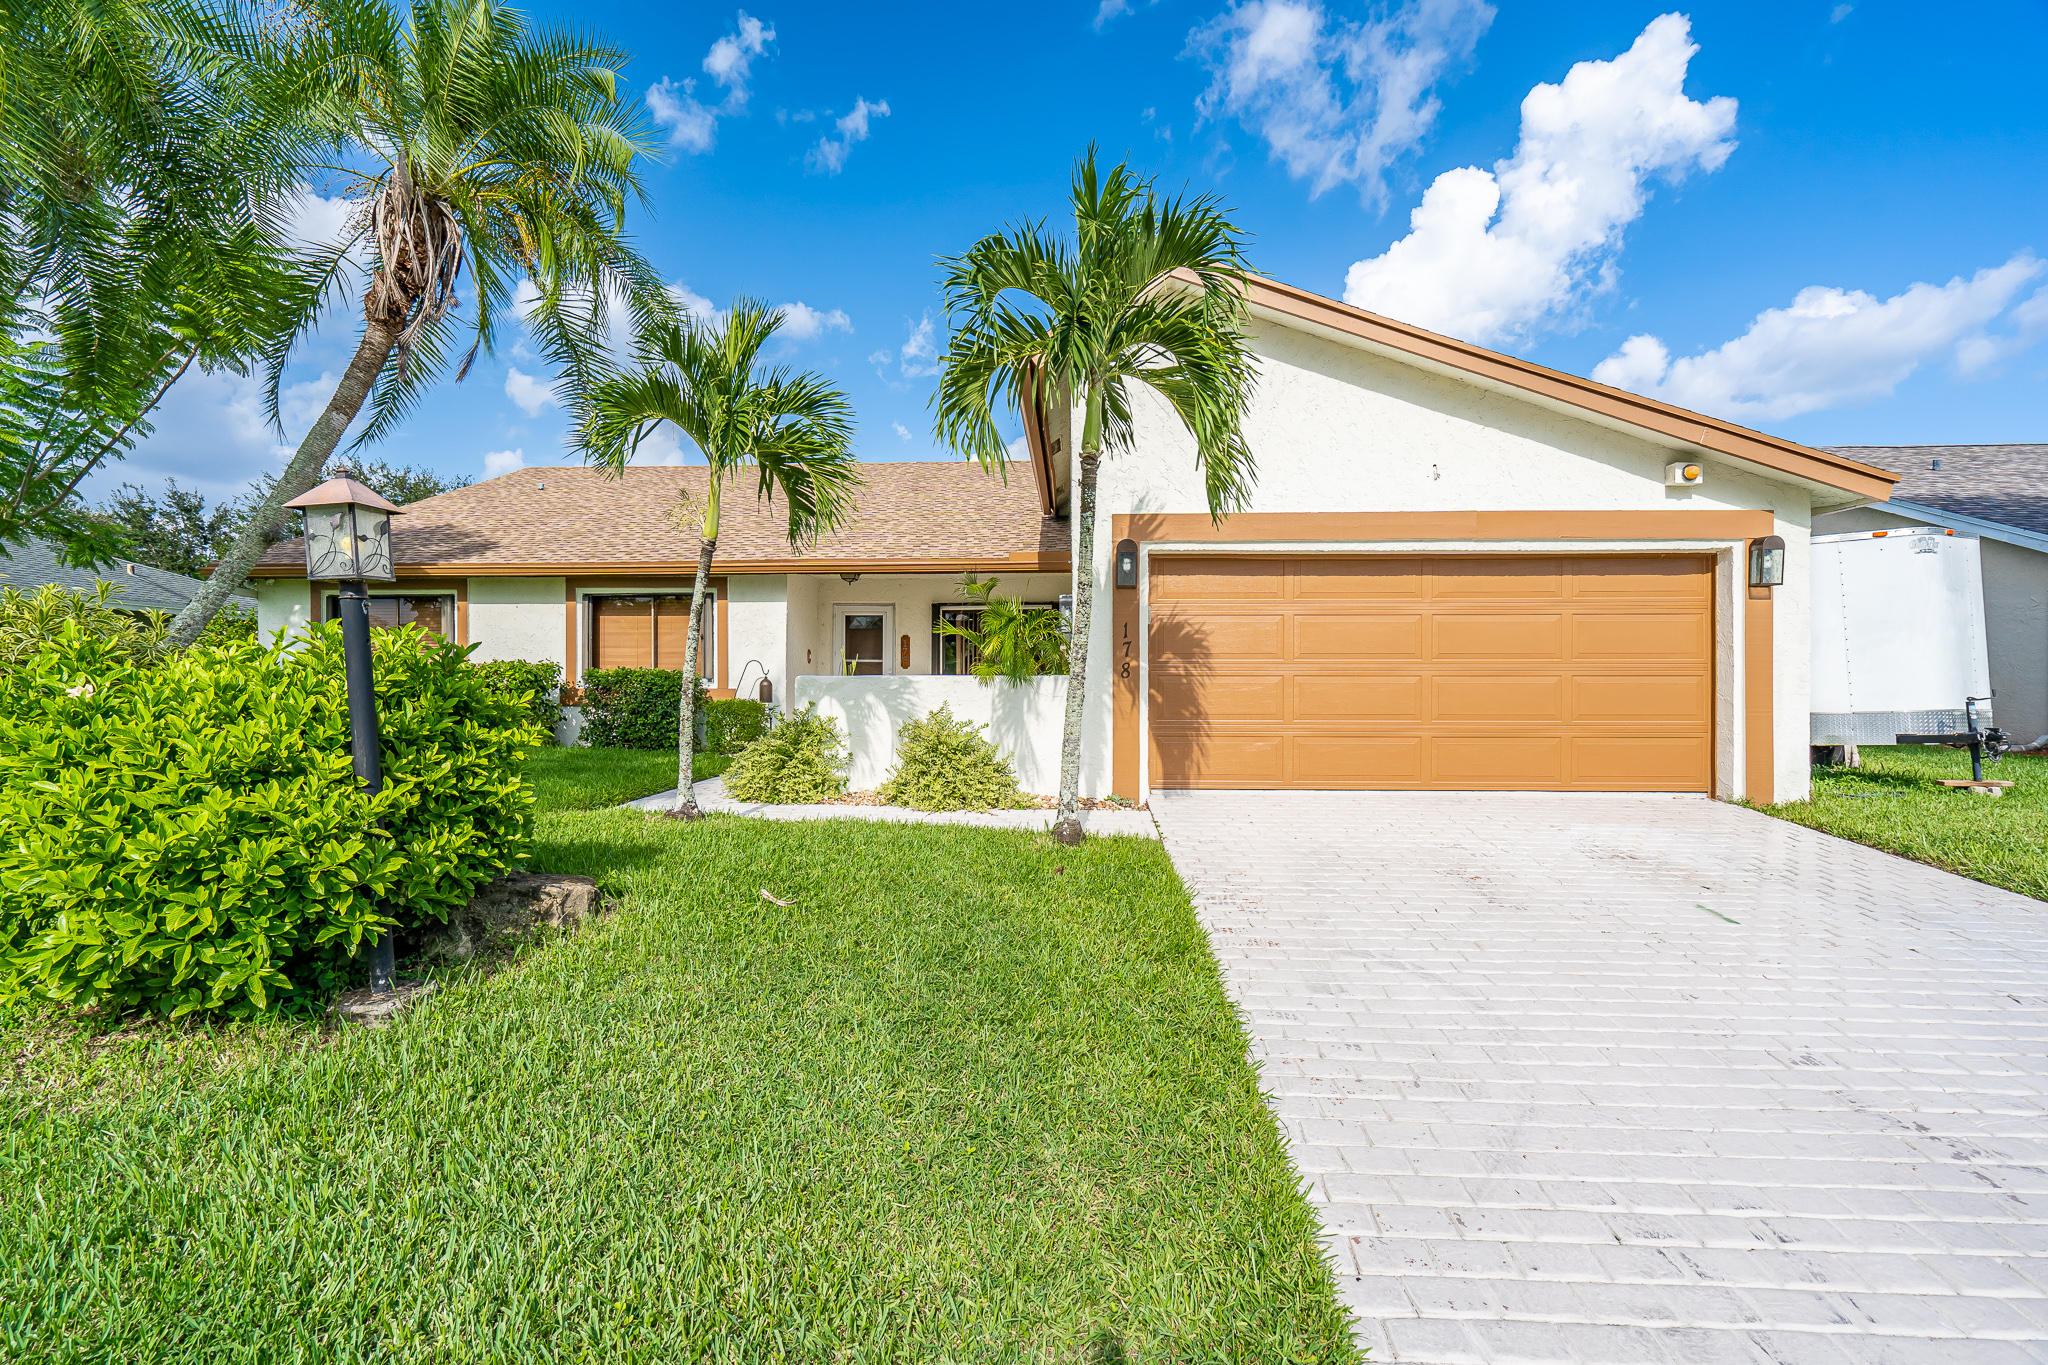 178 Miramar Avenue, Royal Palm Beach, Florida